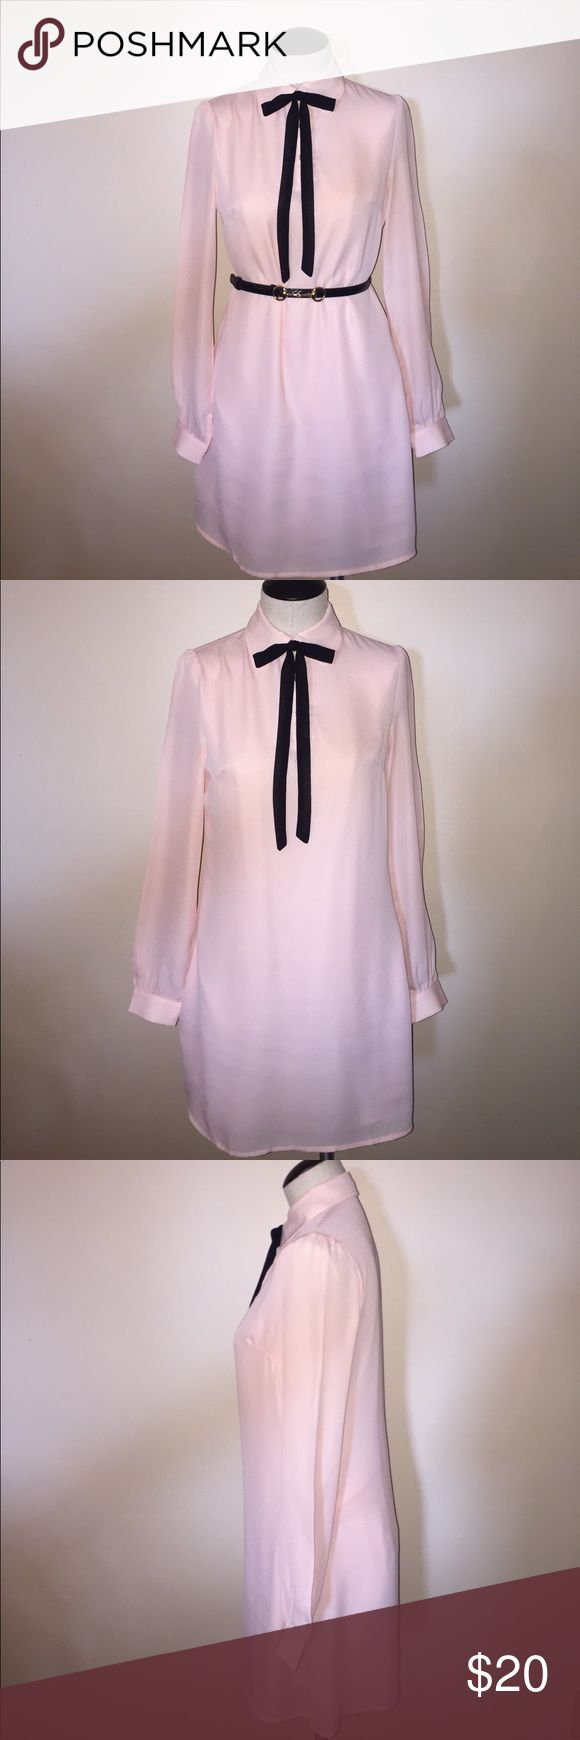 ASOS Shirt Dress with Collar Tie Detail SZ 4 Beautiful Fashion union dress from ASOS size US 4 measurements from shoulder to hem: 32 1/2 inches from should to sleeve 24 1/2 inches. Worn once excellent condition! ASOS Dresses Mini